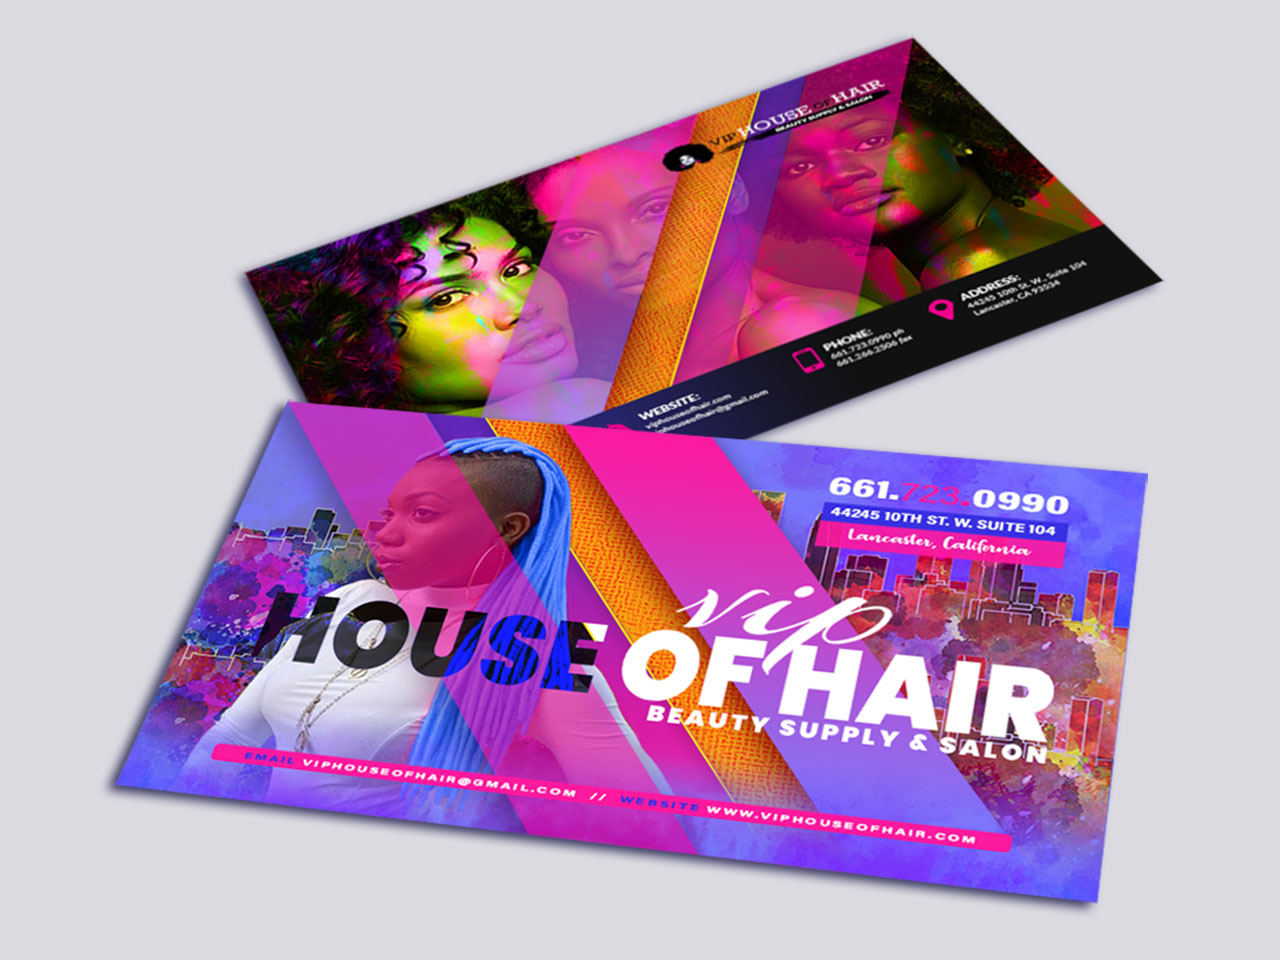 Business Card Design VIP House Of Hair Beauty Supply